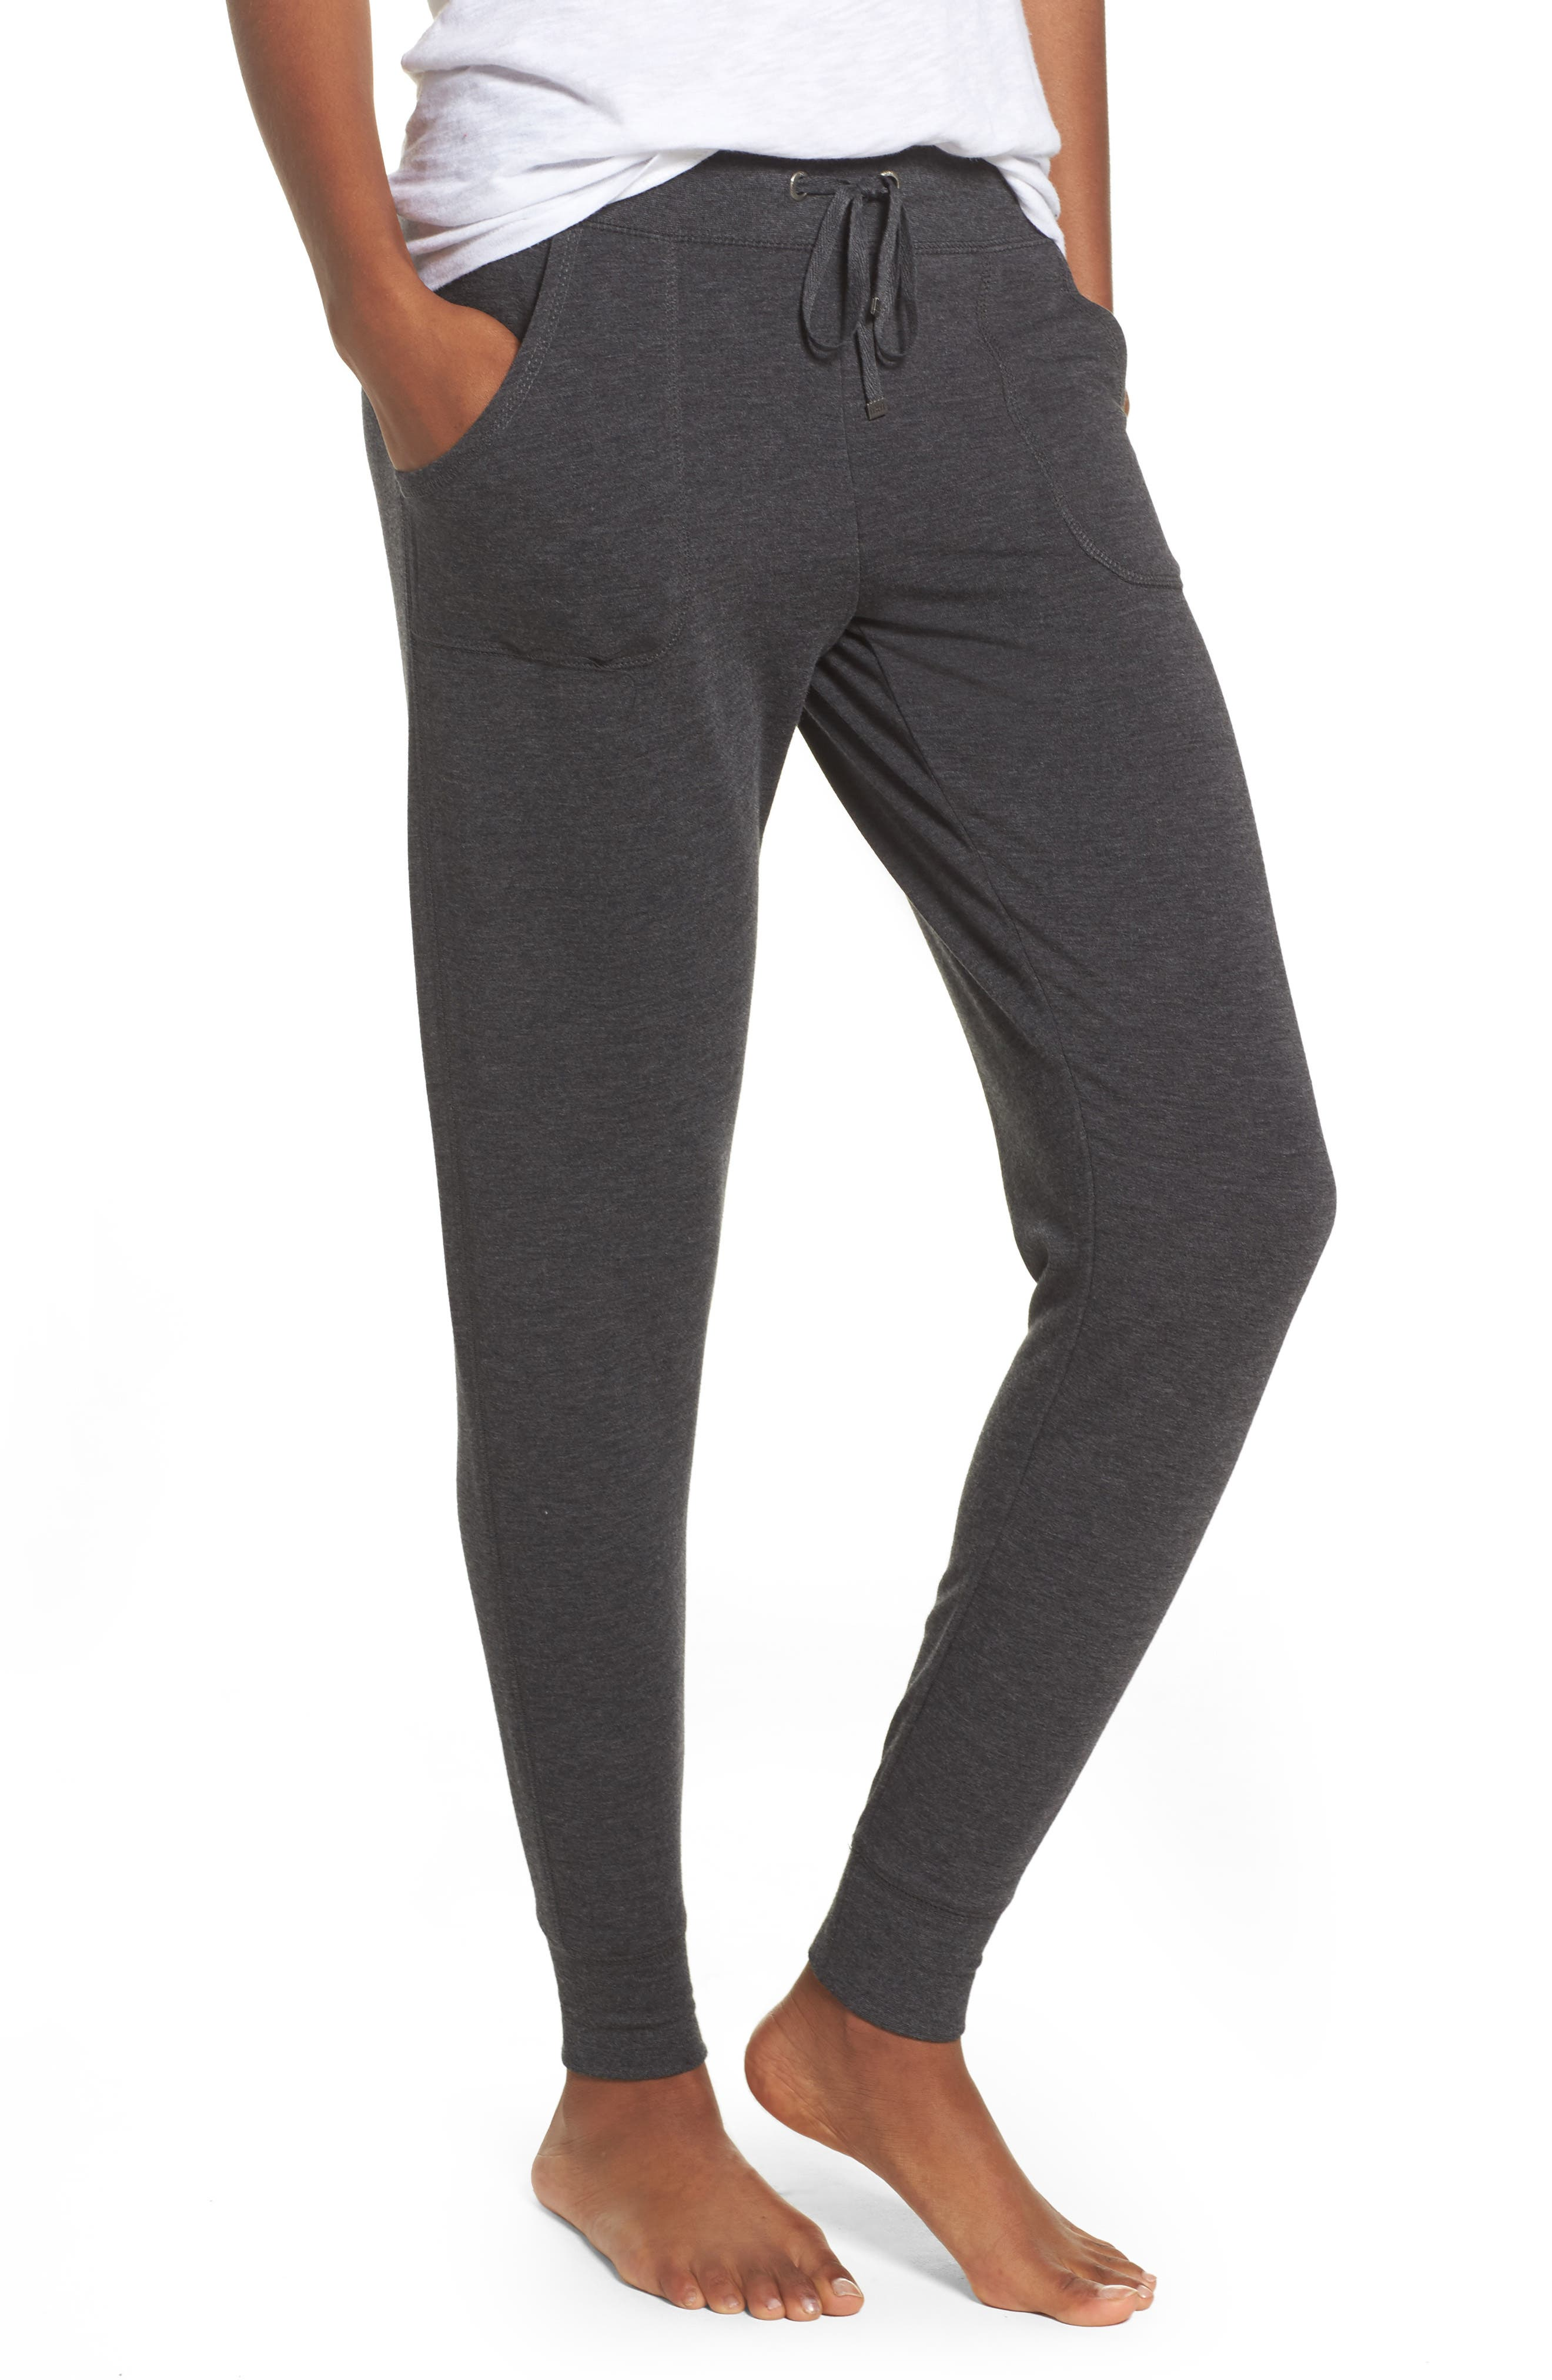 All About It Lounge Pants,                         Main,                         color, Grey Wolf Heather